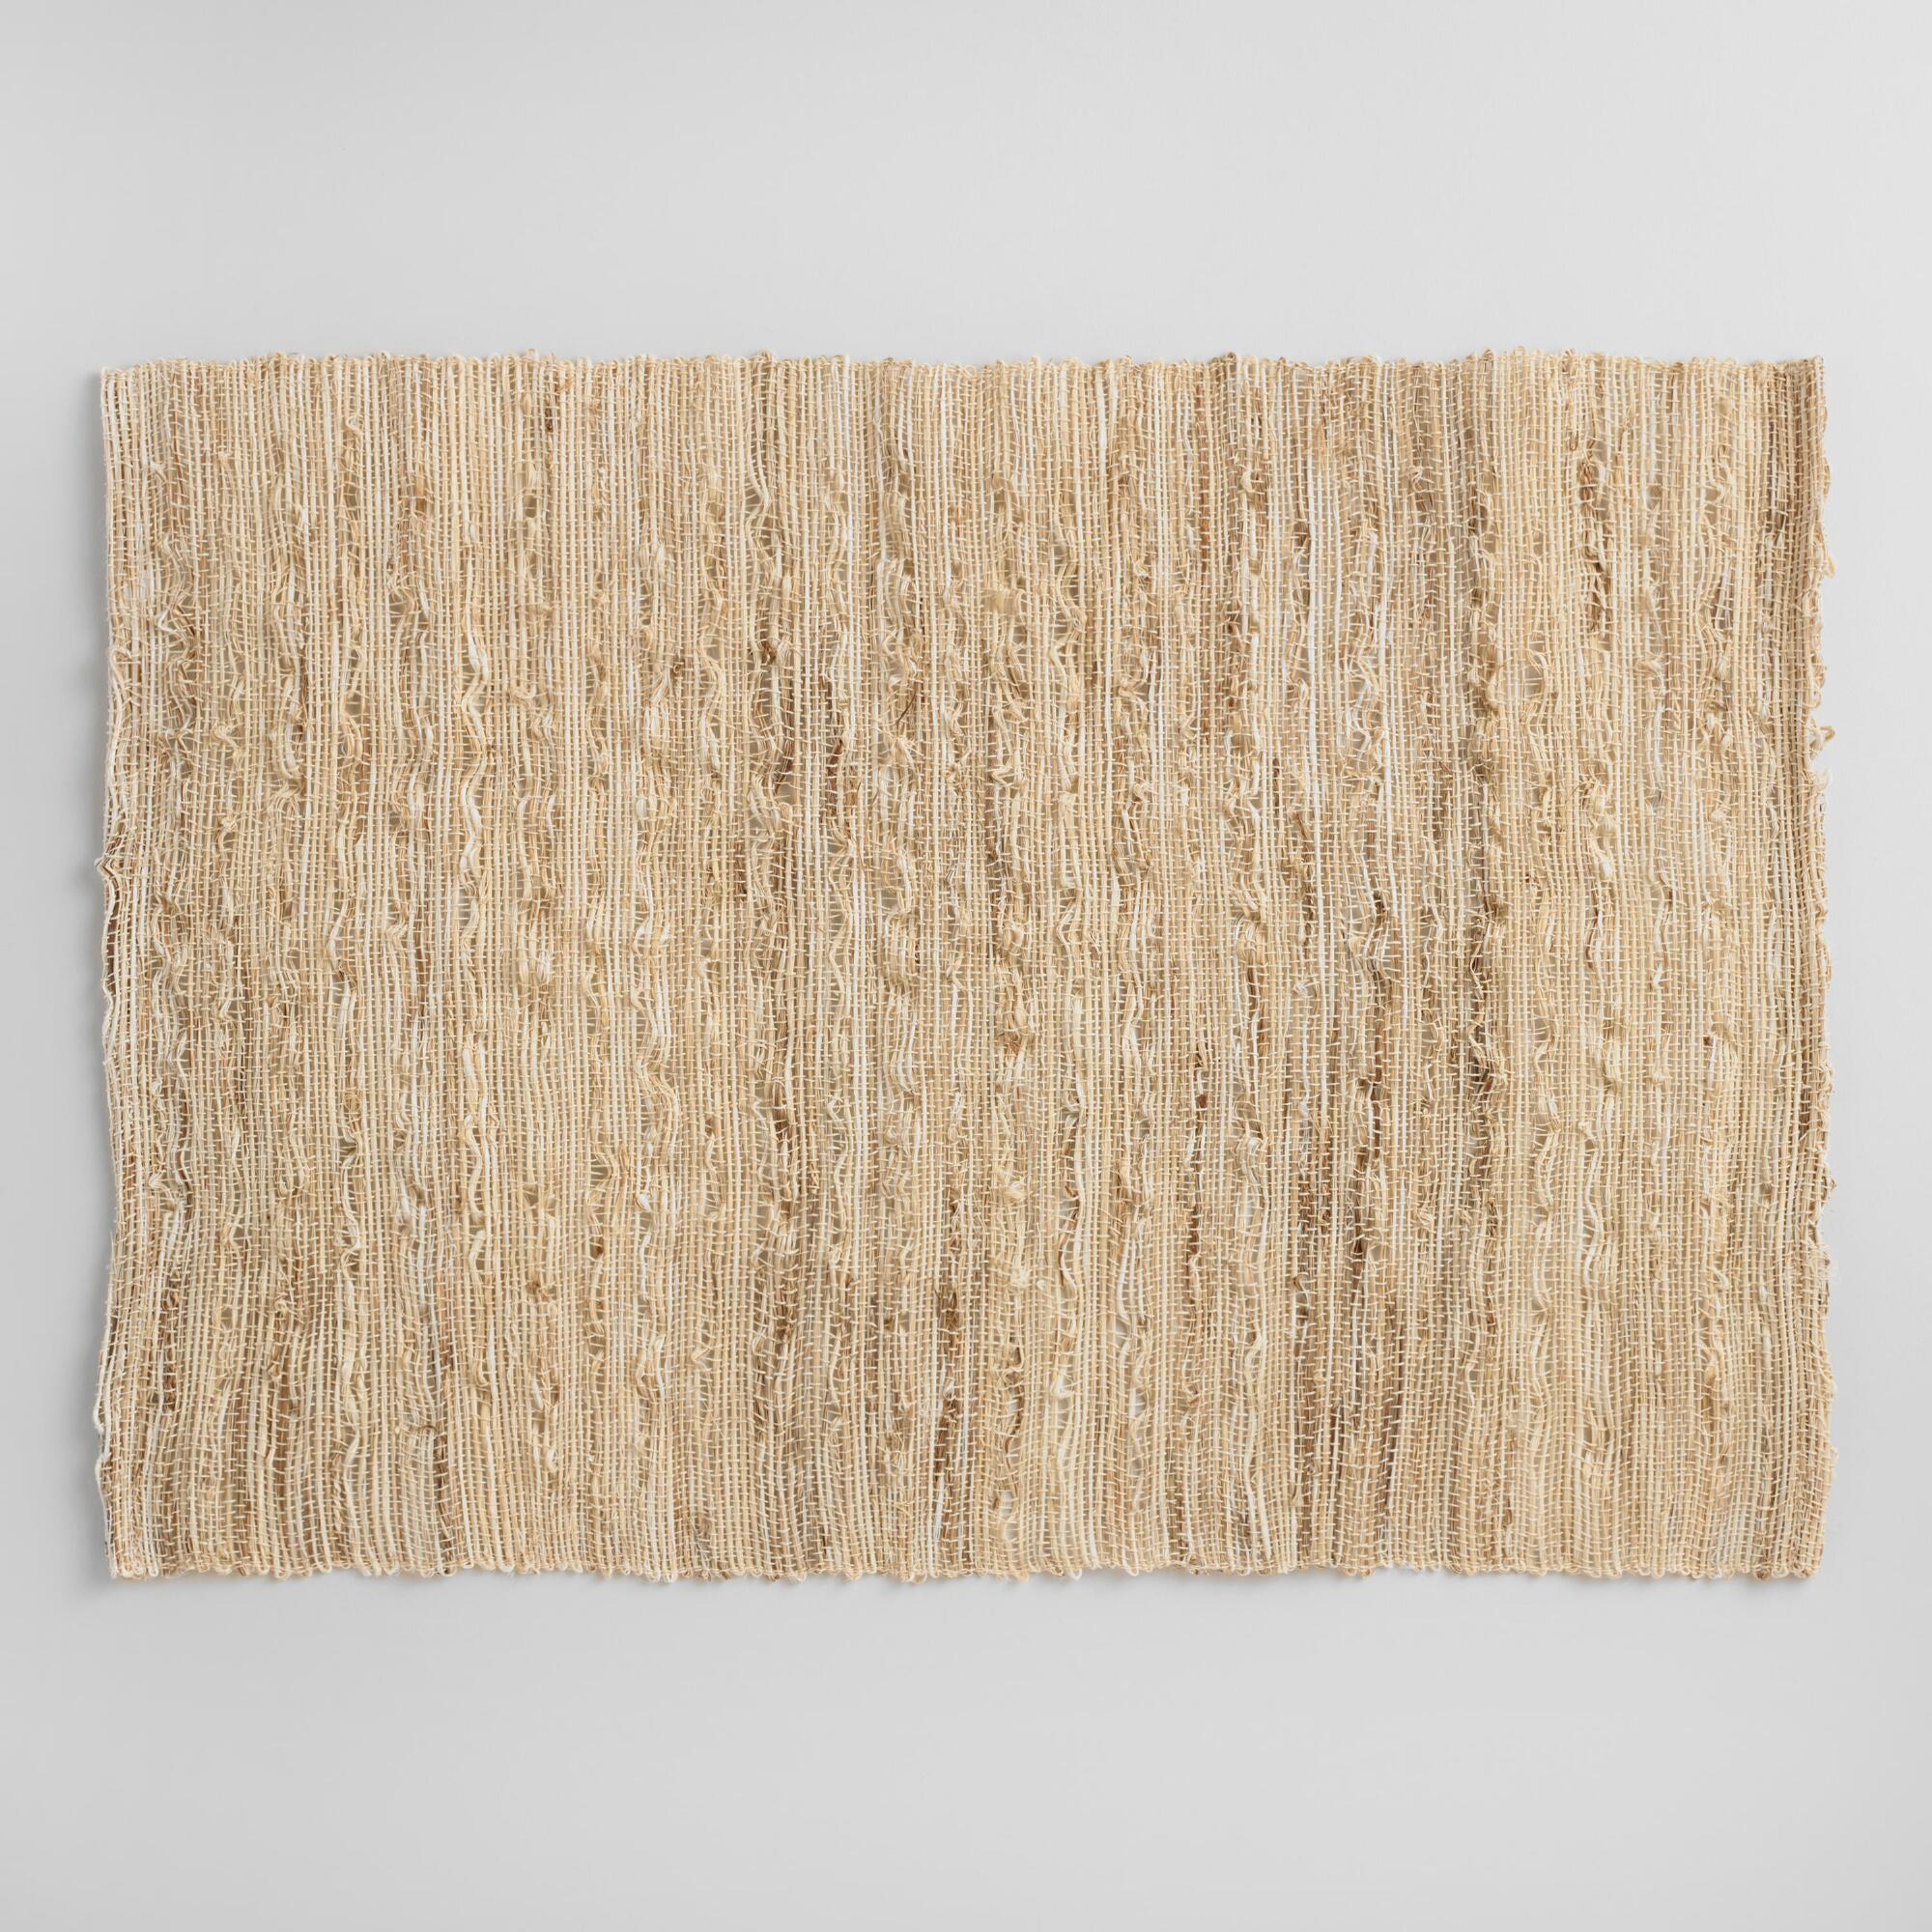 Woven Fiber Placemats Set of 4 - Natural Fiber by World Market